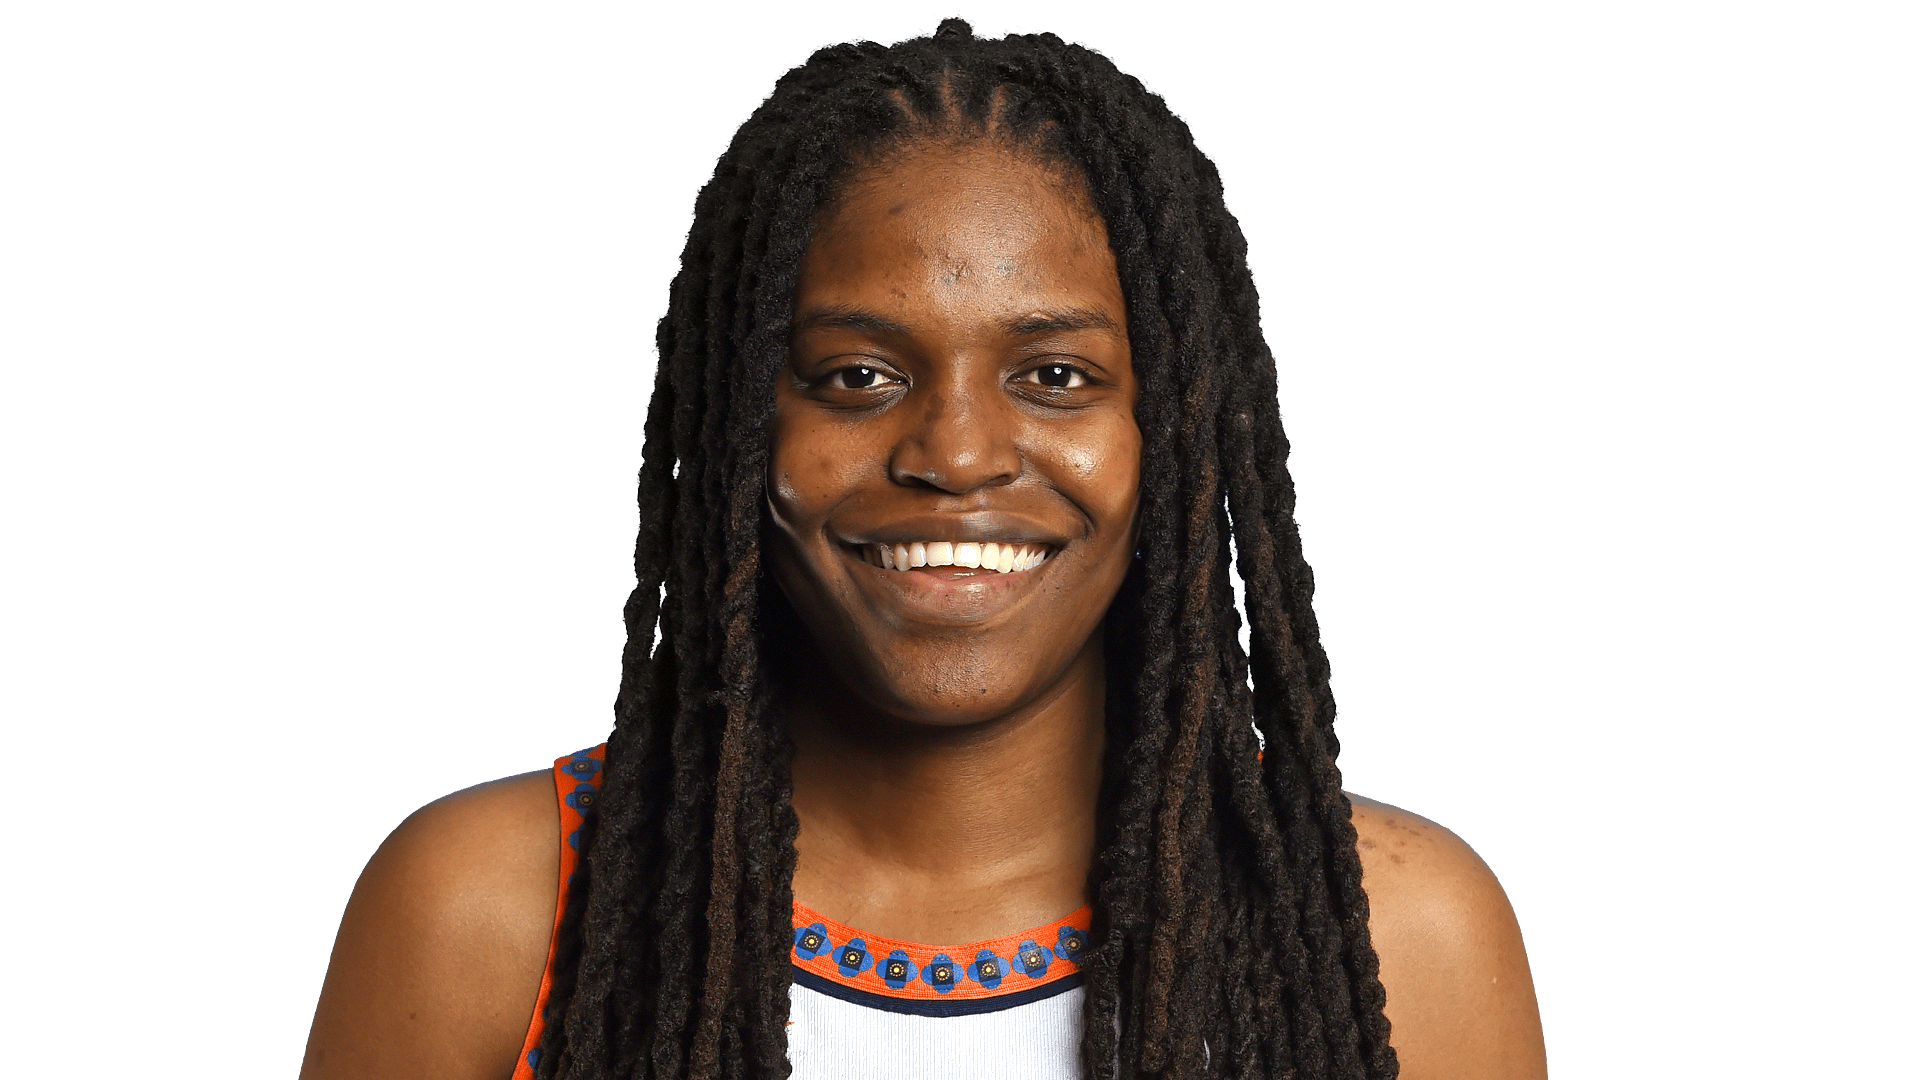 The 2021 All-WNBA First Team announced, Jonquel Jones selected unanimously